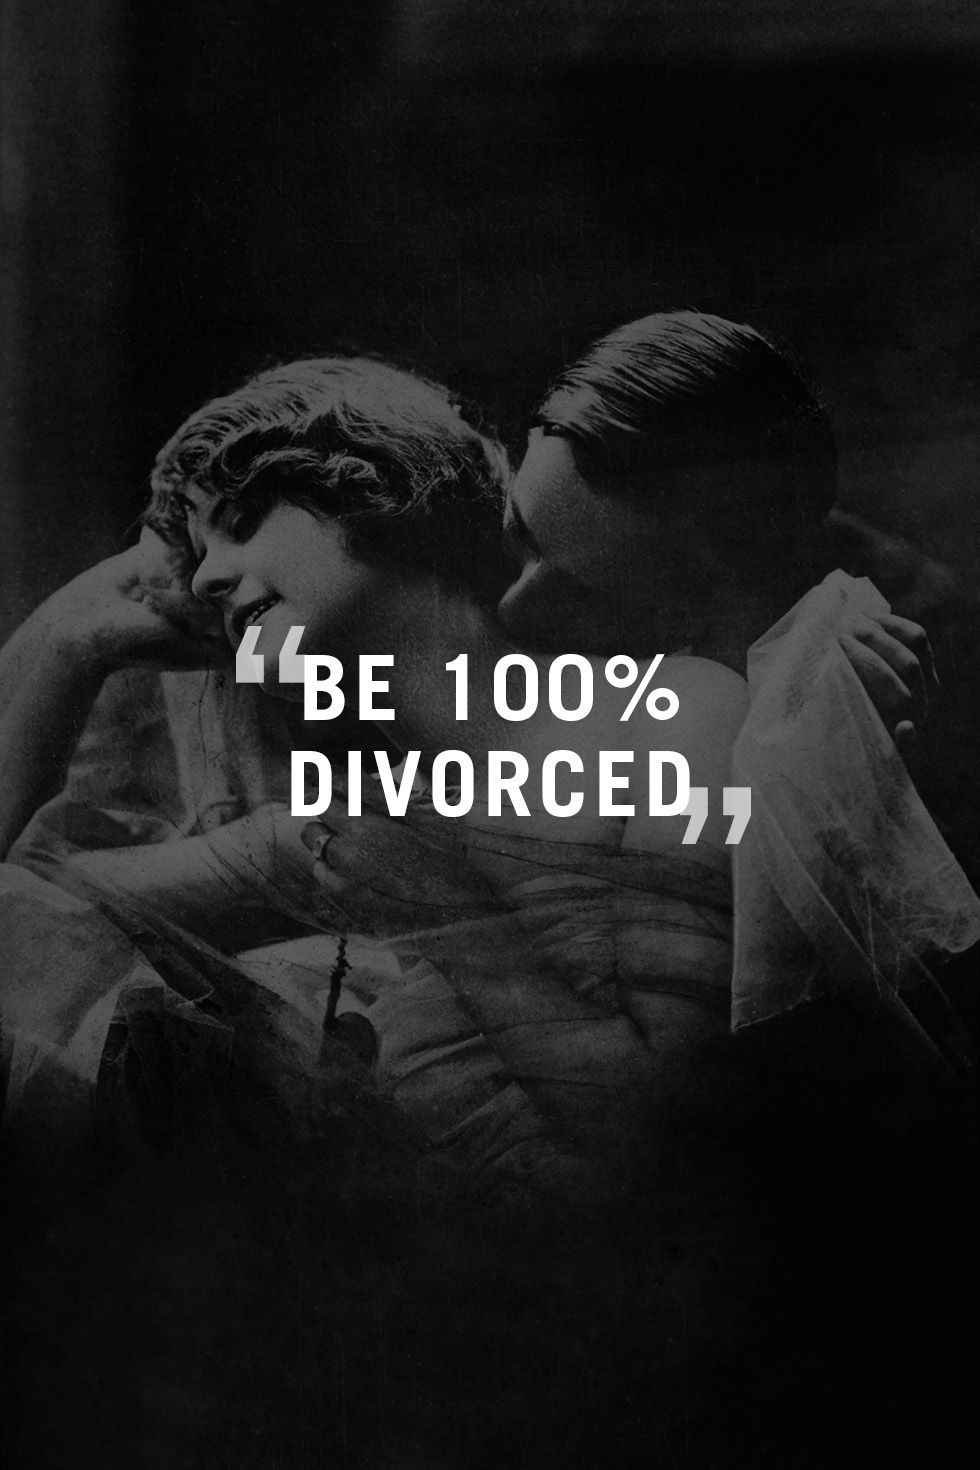 Dating someone who is divorced